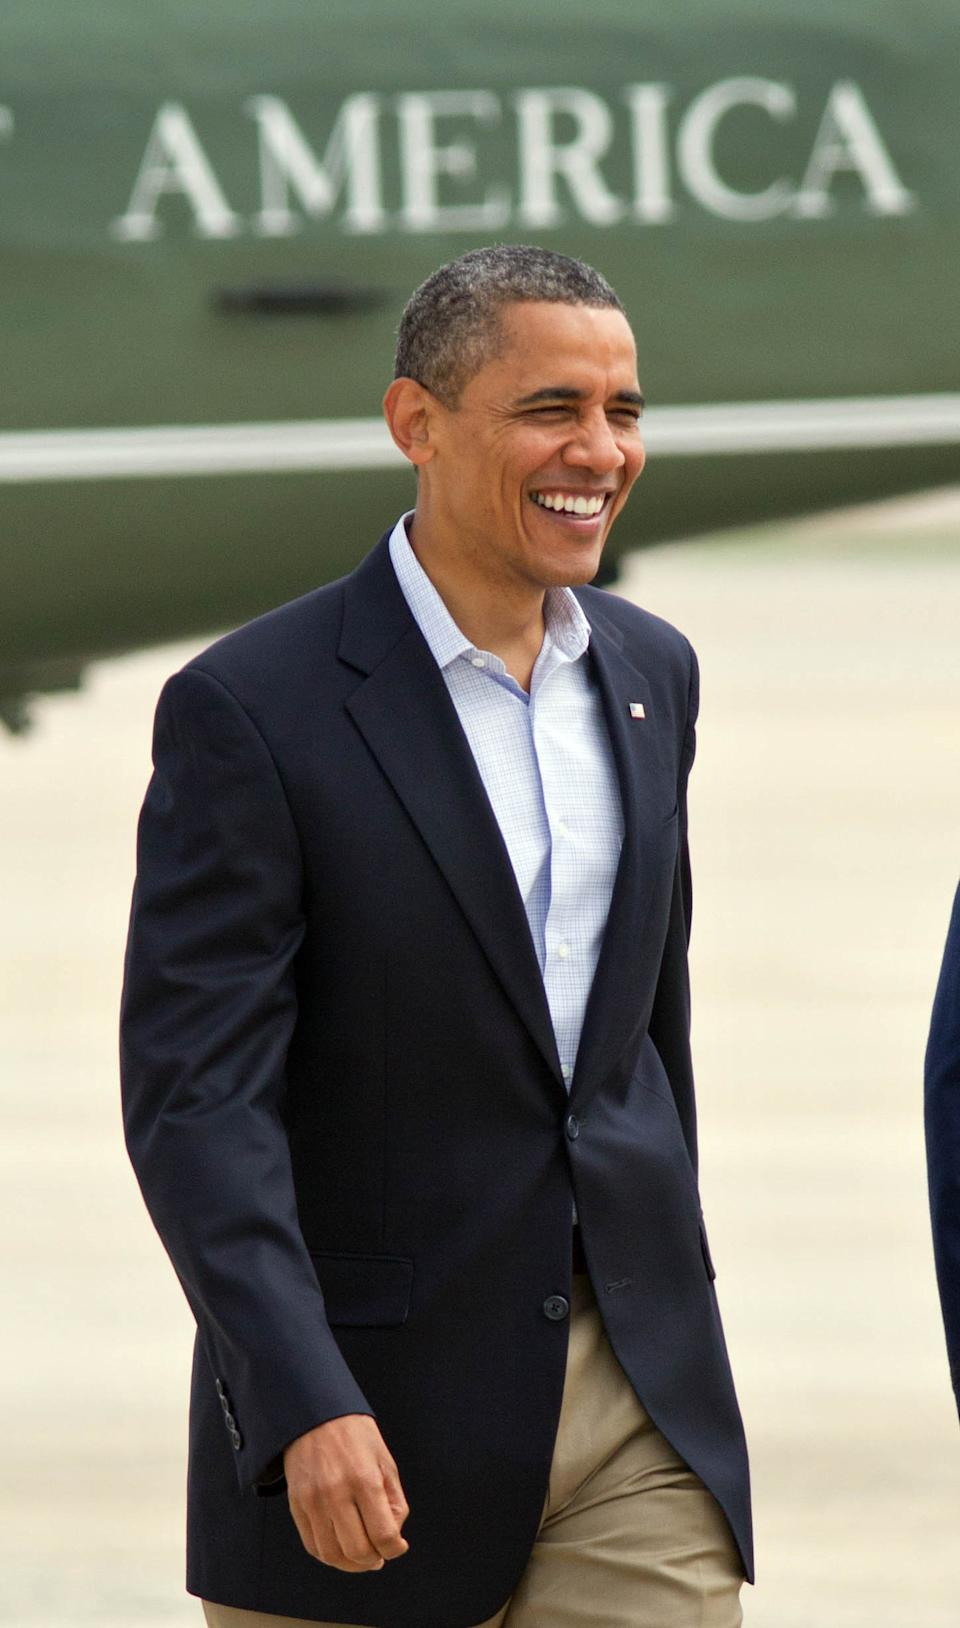 President Barack Obama heads to Air Force One for a second day of campaigning in Virginia, a crucial swing state he won four years ago, Saturday, July 14, 2012, at Andrews Air Force Base, Md. (AP Photo/J. Scott Applewhite)